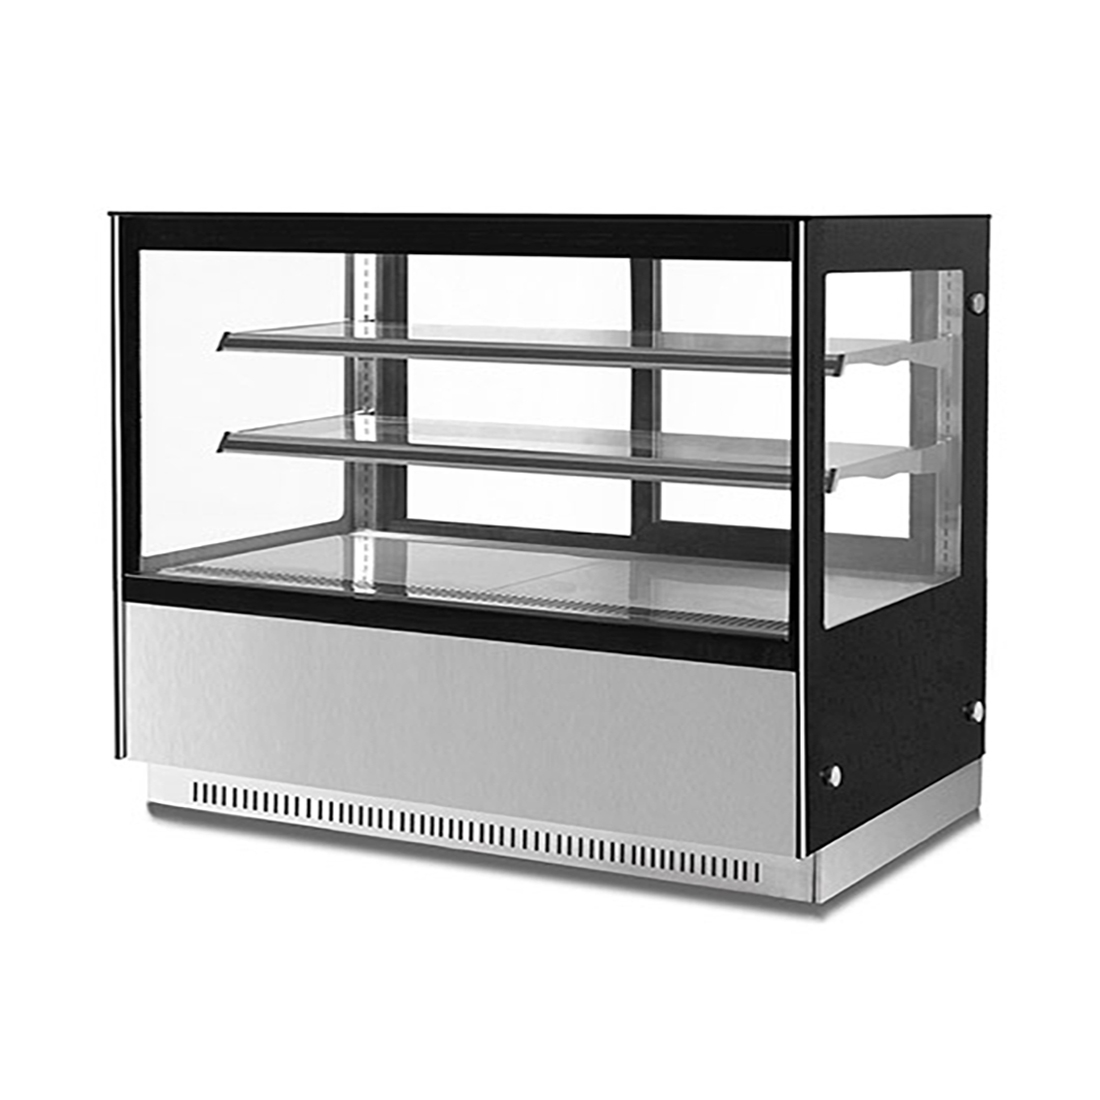 Modern 2 Shelves Cake or Food Display - GN-1800RF2